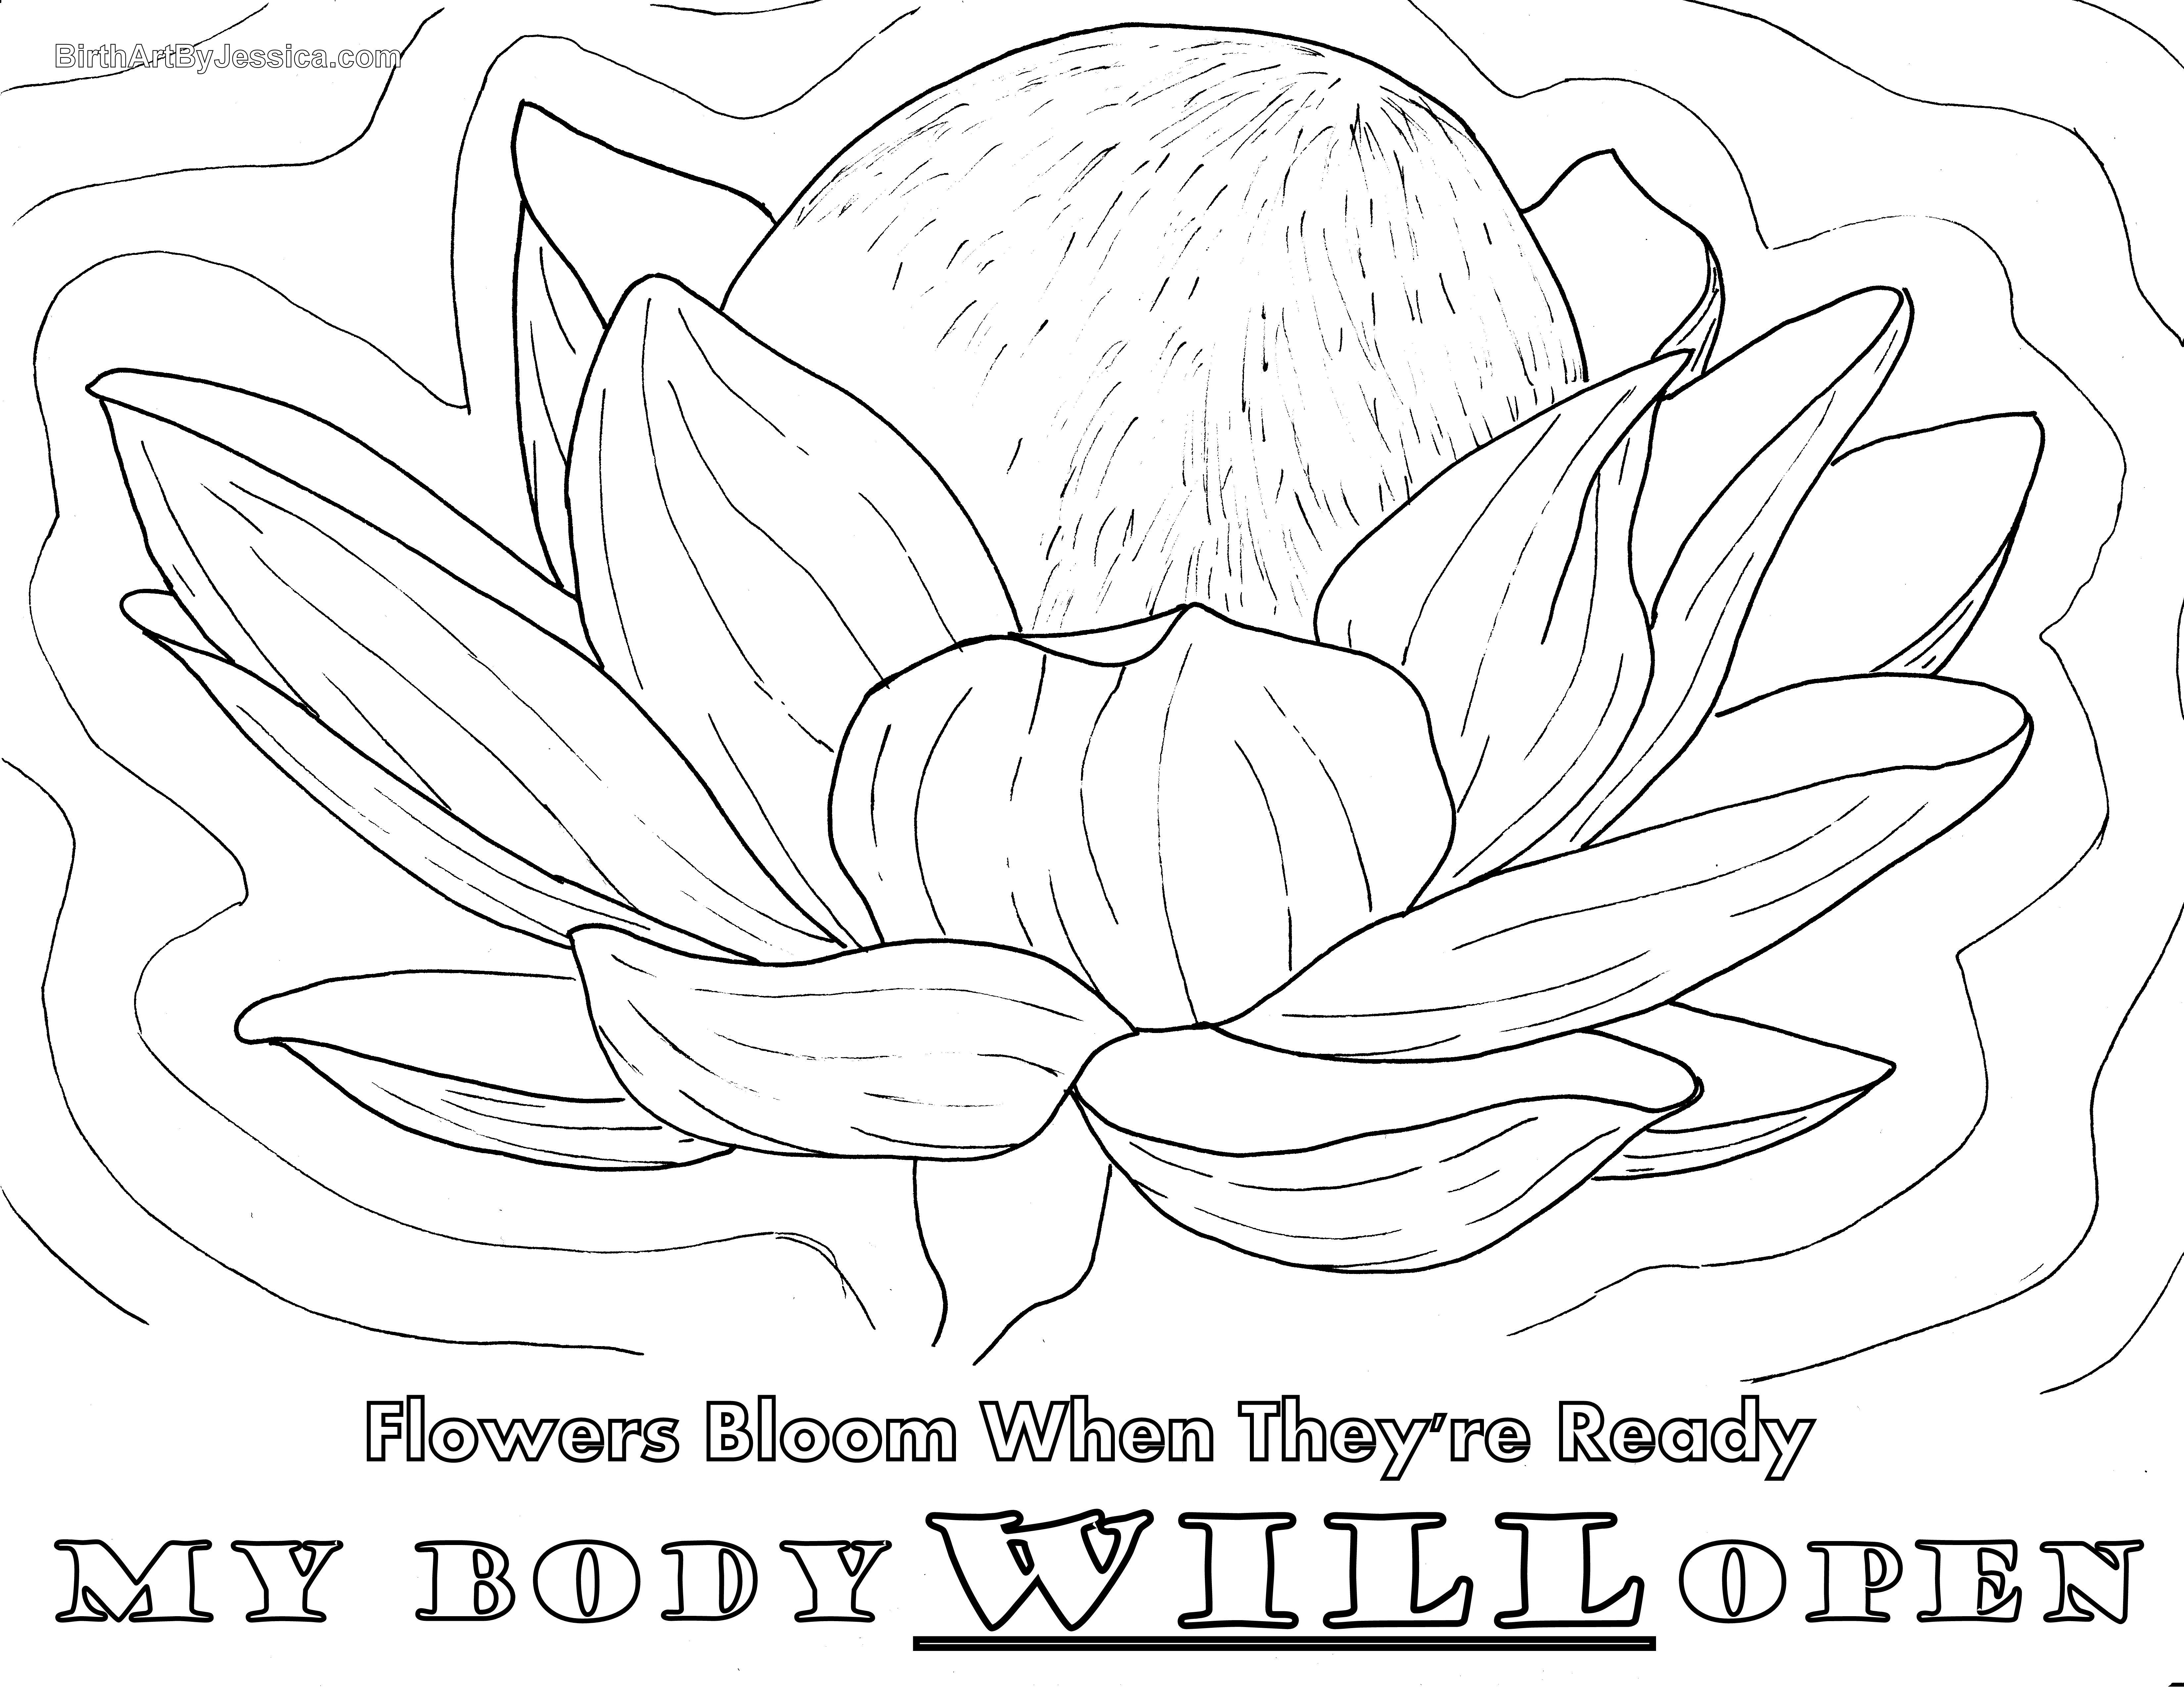 Birth Affirmation Coloring Page Free Printable My Body